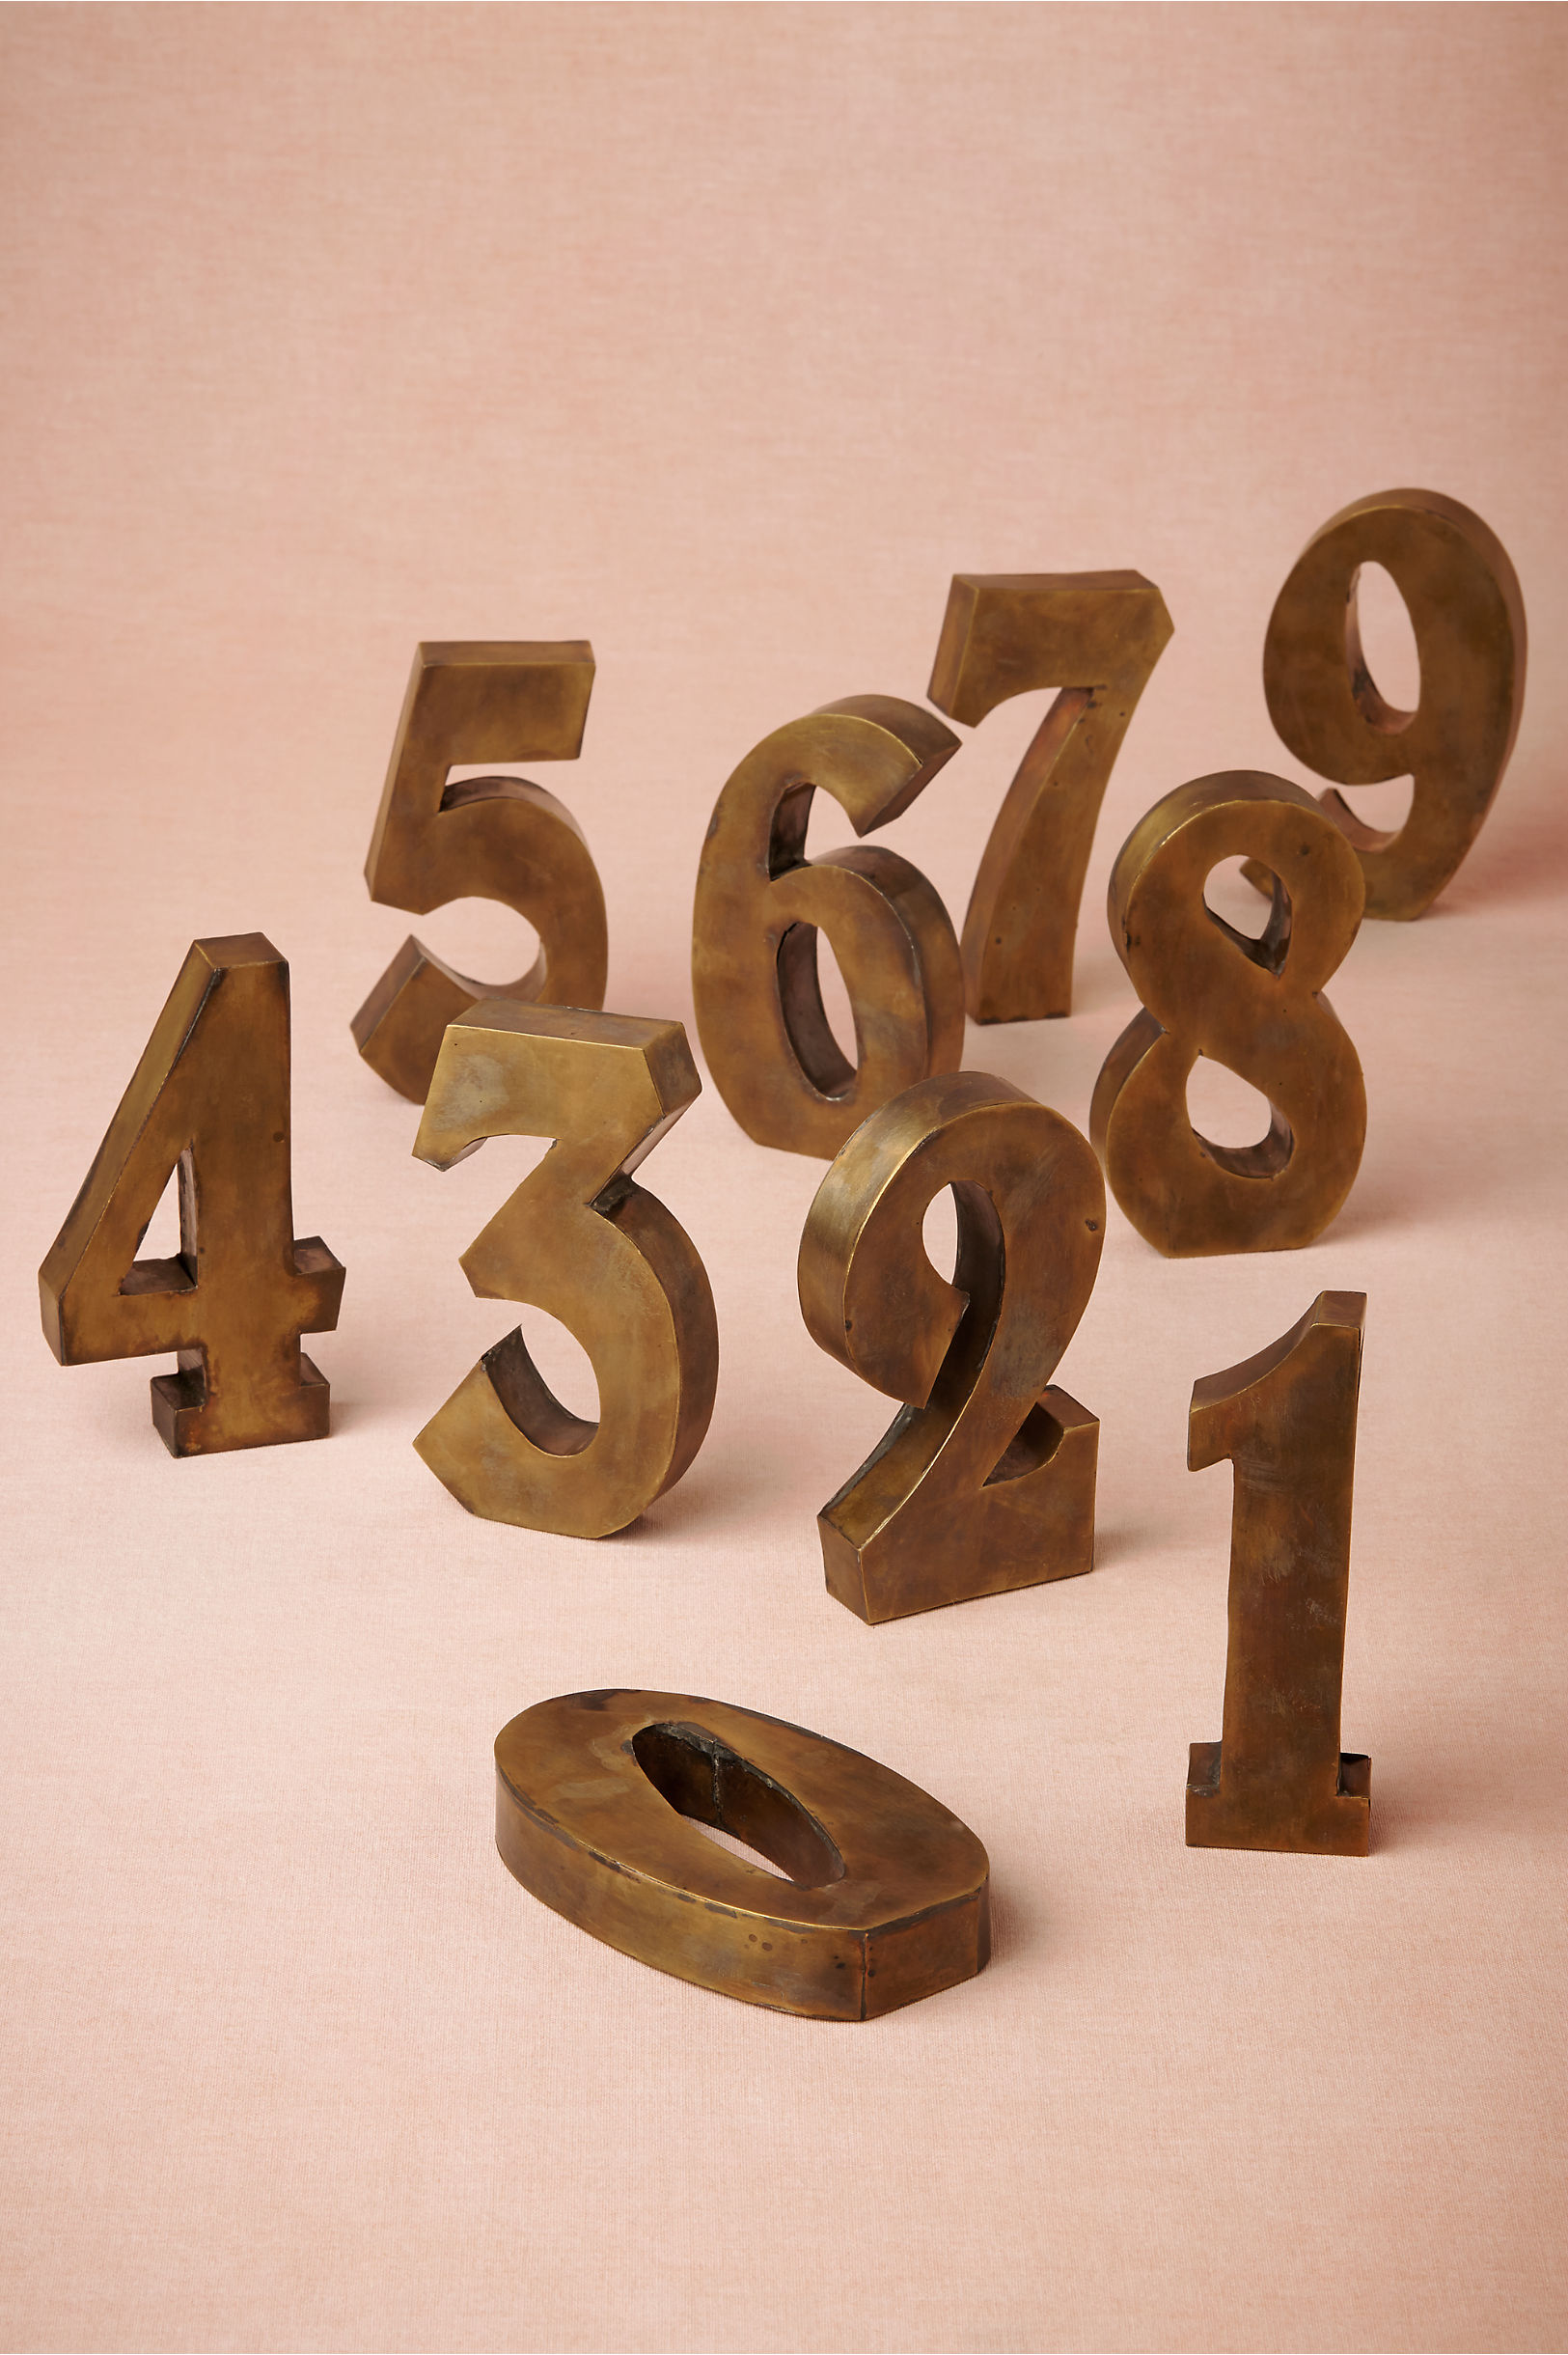 1-12 Brass Numbers $8